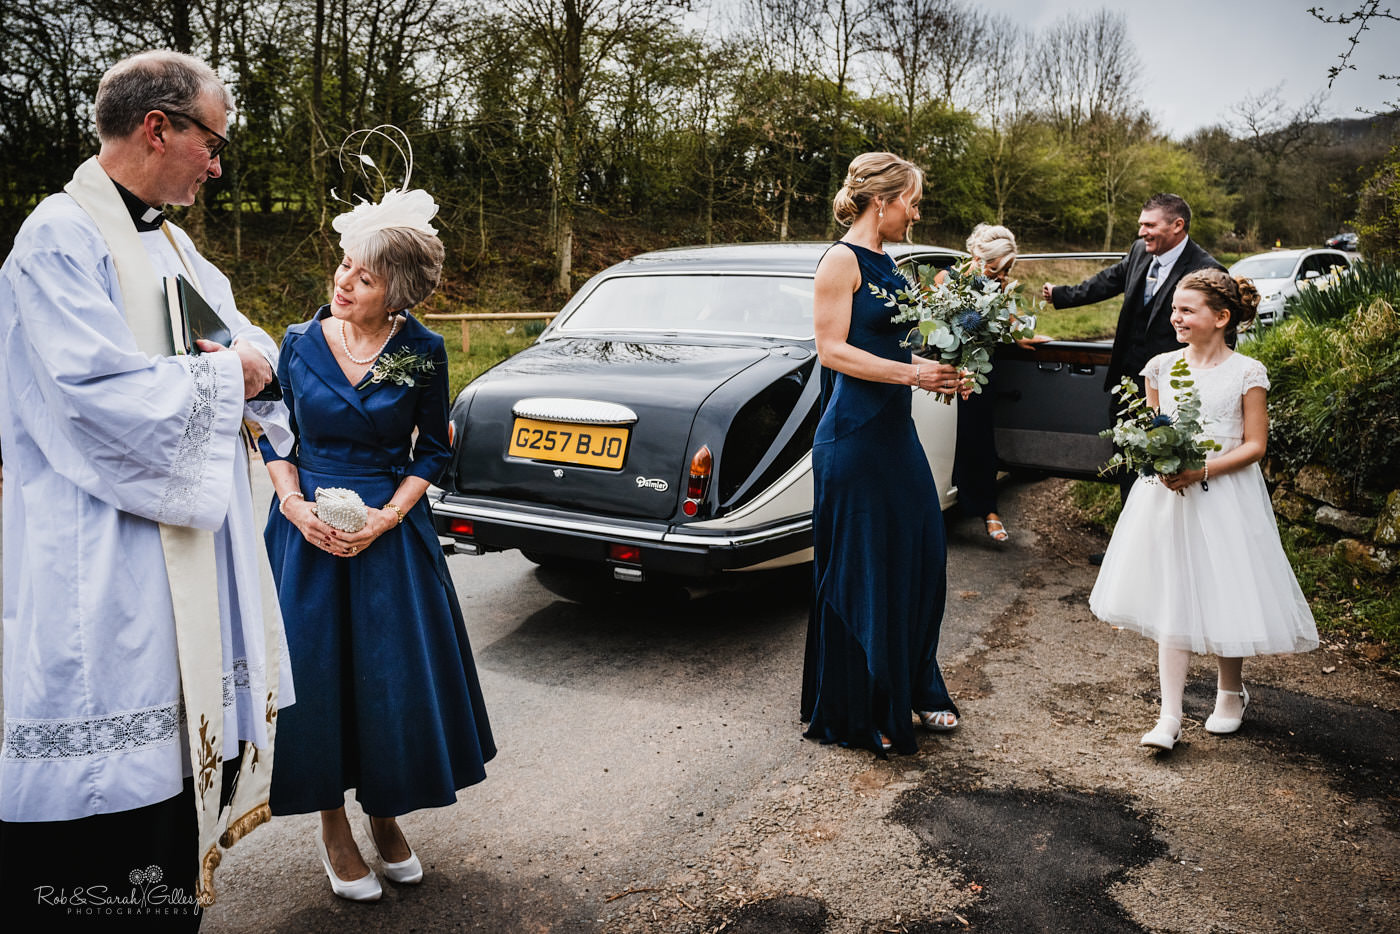 Bridal cars arrive for wedding at St Kenelm's church in Worcestershire